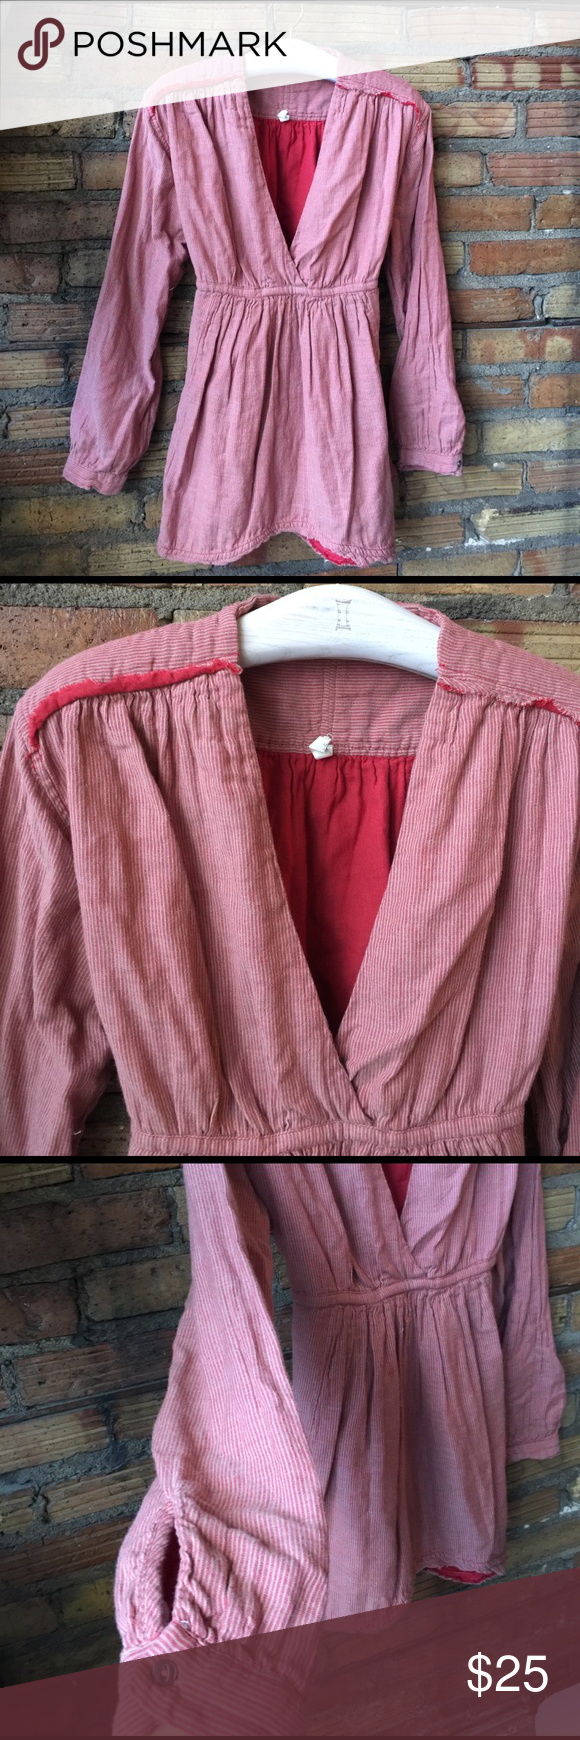 Free people deep v raw edge peasant top In good used condition . It's definitely been through the dryer a lot, the raw edges and turned up a little bit. It's sort of a striped salmon color. Free People Tops Blouses